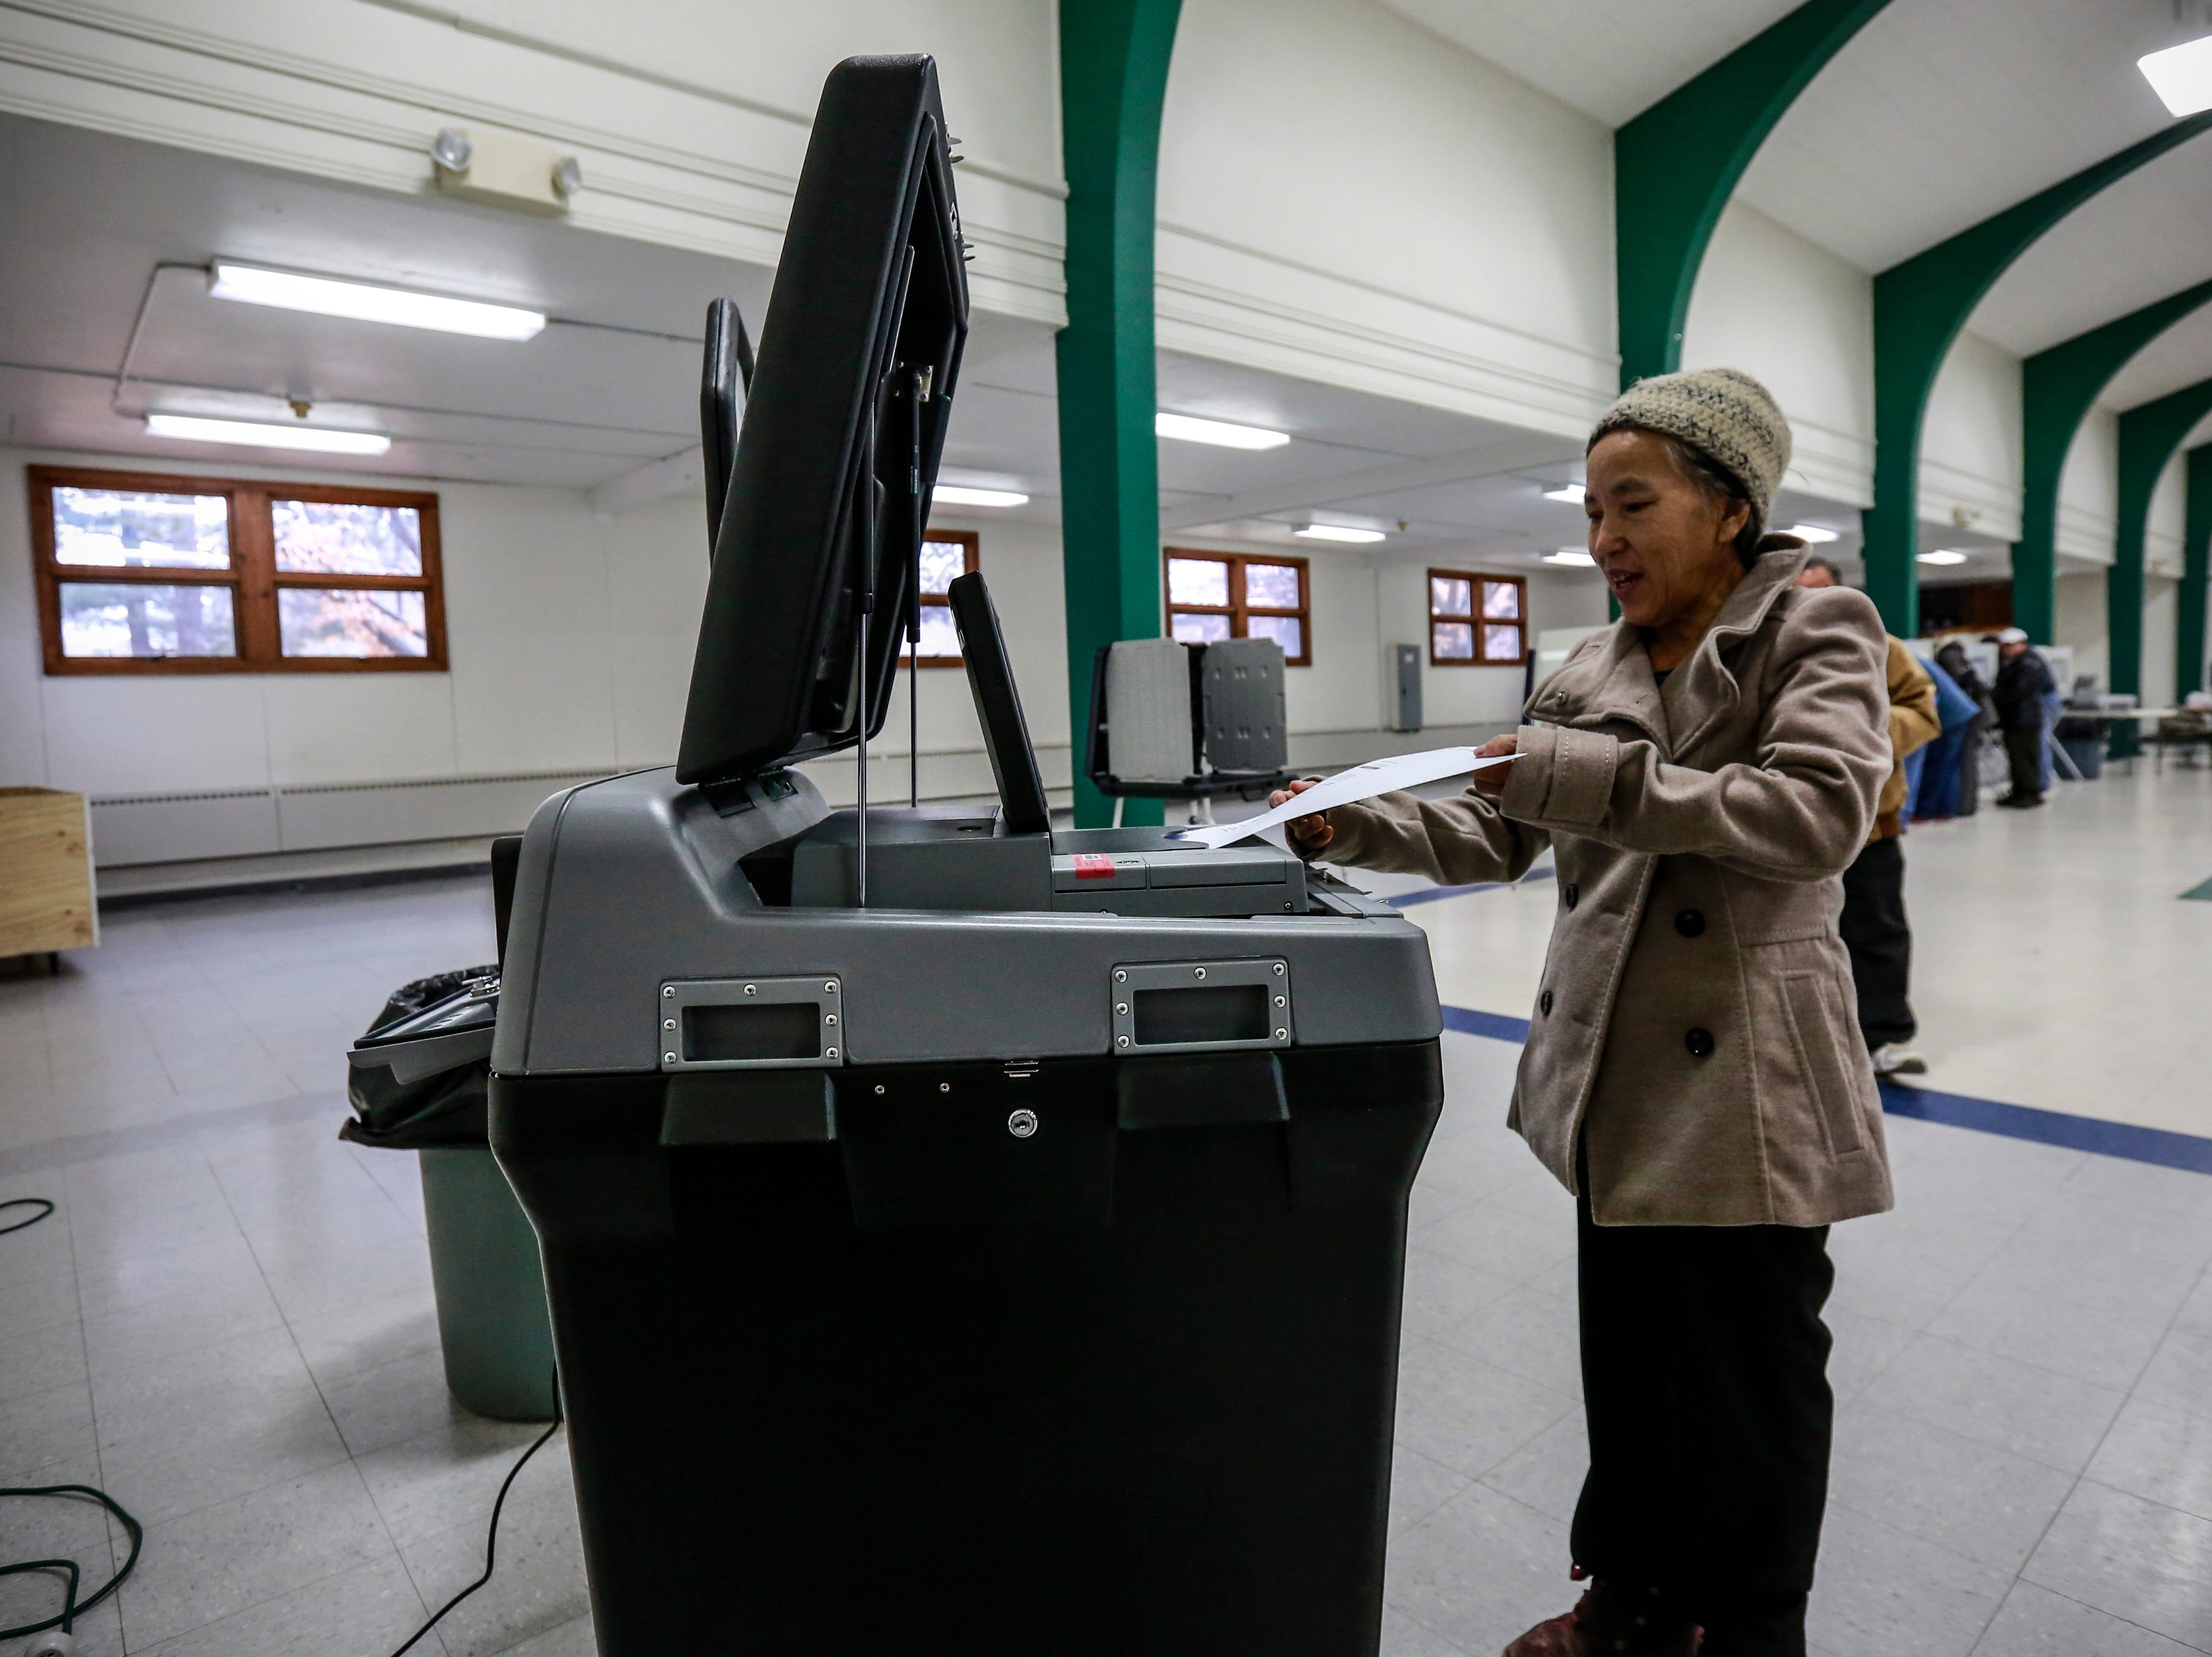 Youa Yang of Wausau feeds her ballot to a counting machine Tuesday, Nov. 6, 2018, at the Youth Building in Marathon Park in Wausau, Wis. T'xer Zhon Kha/USA TODAY NETWORK-Wisconsin